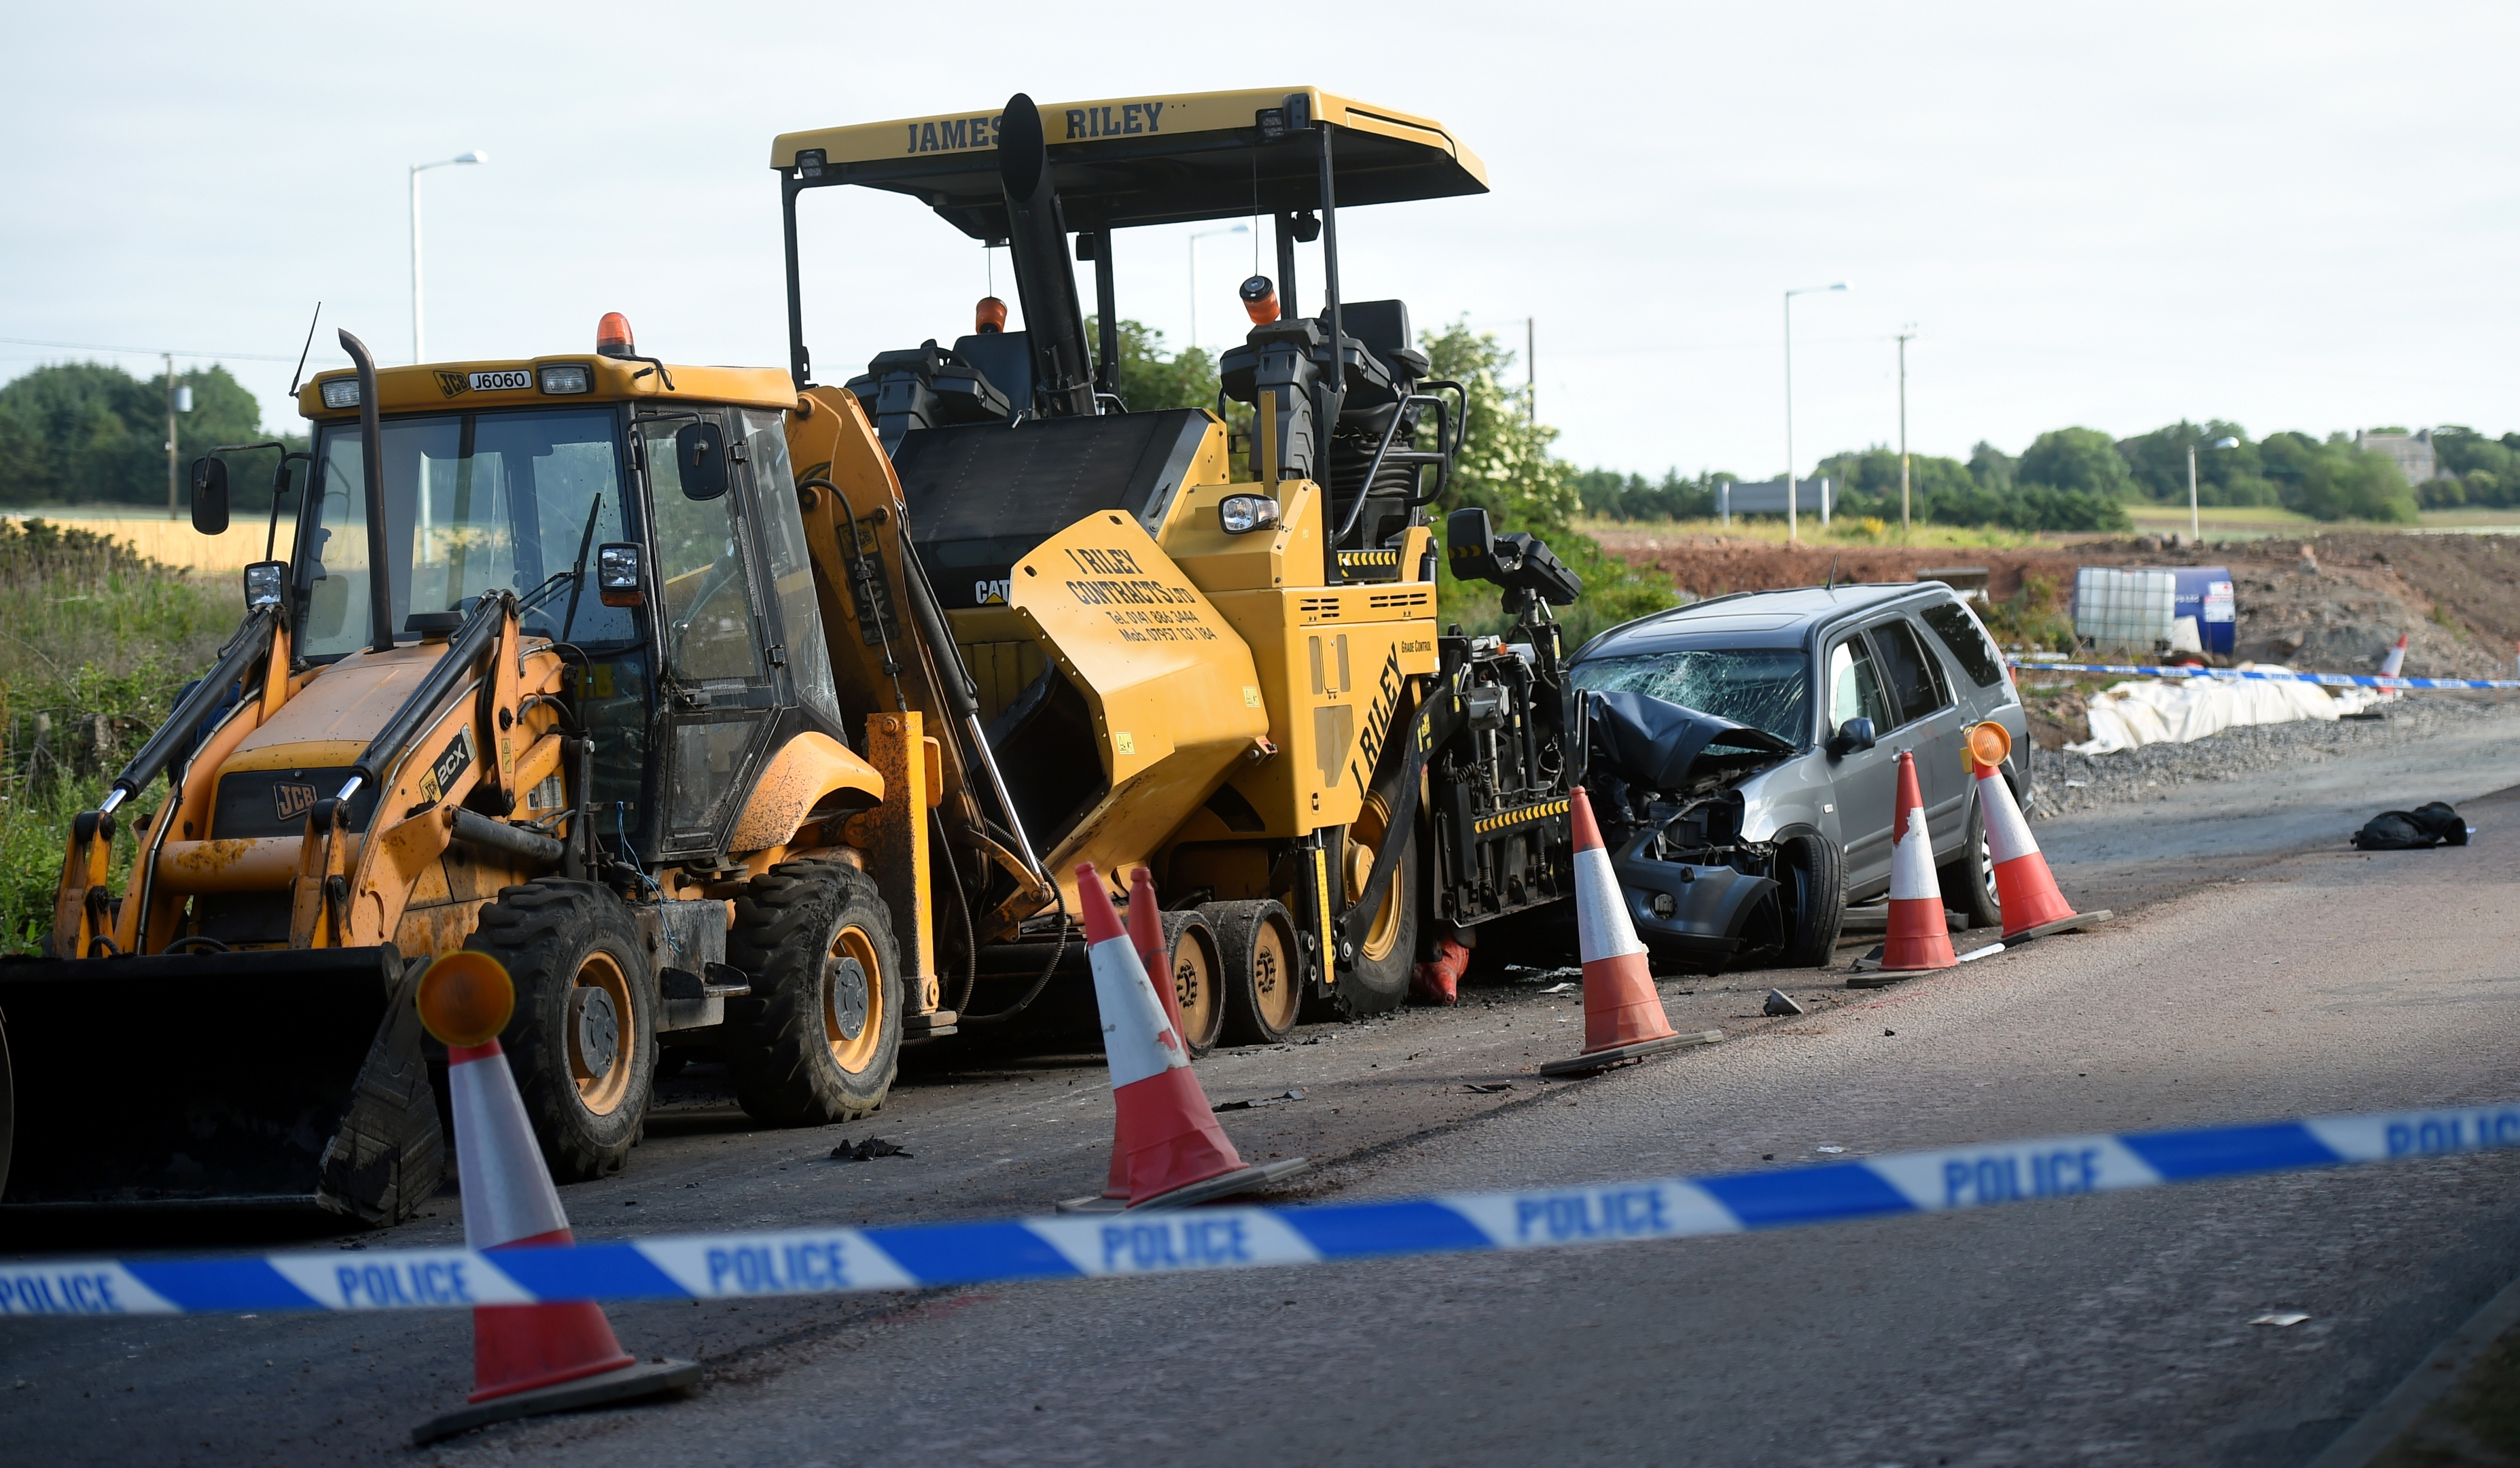 The scene of the crash on the old A90 near Balmedie